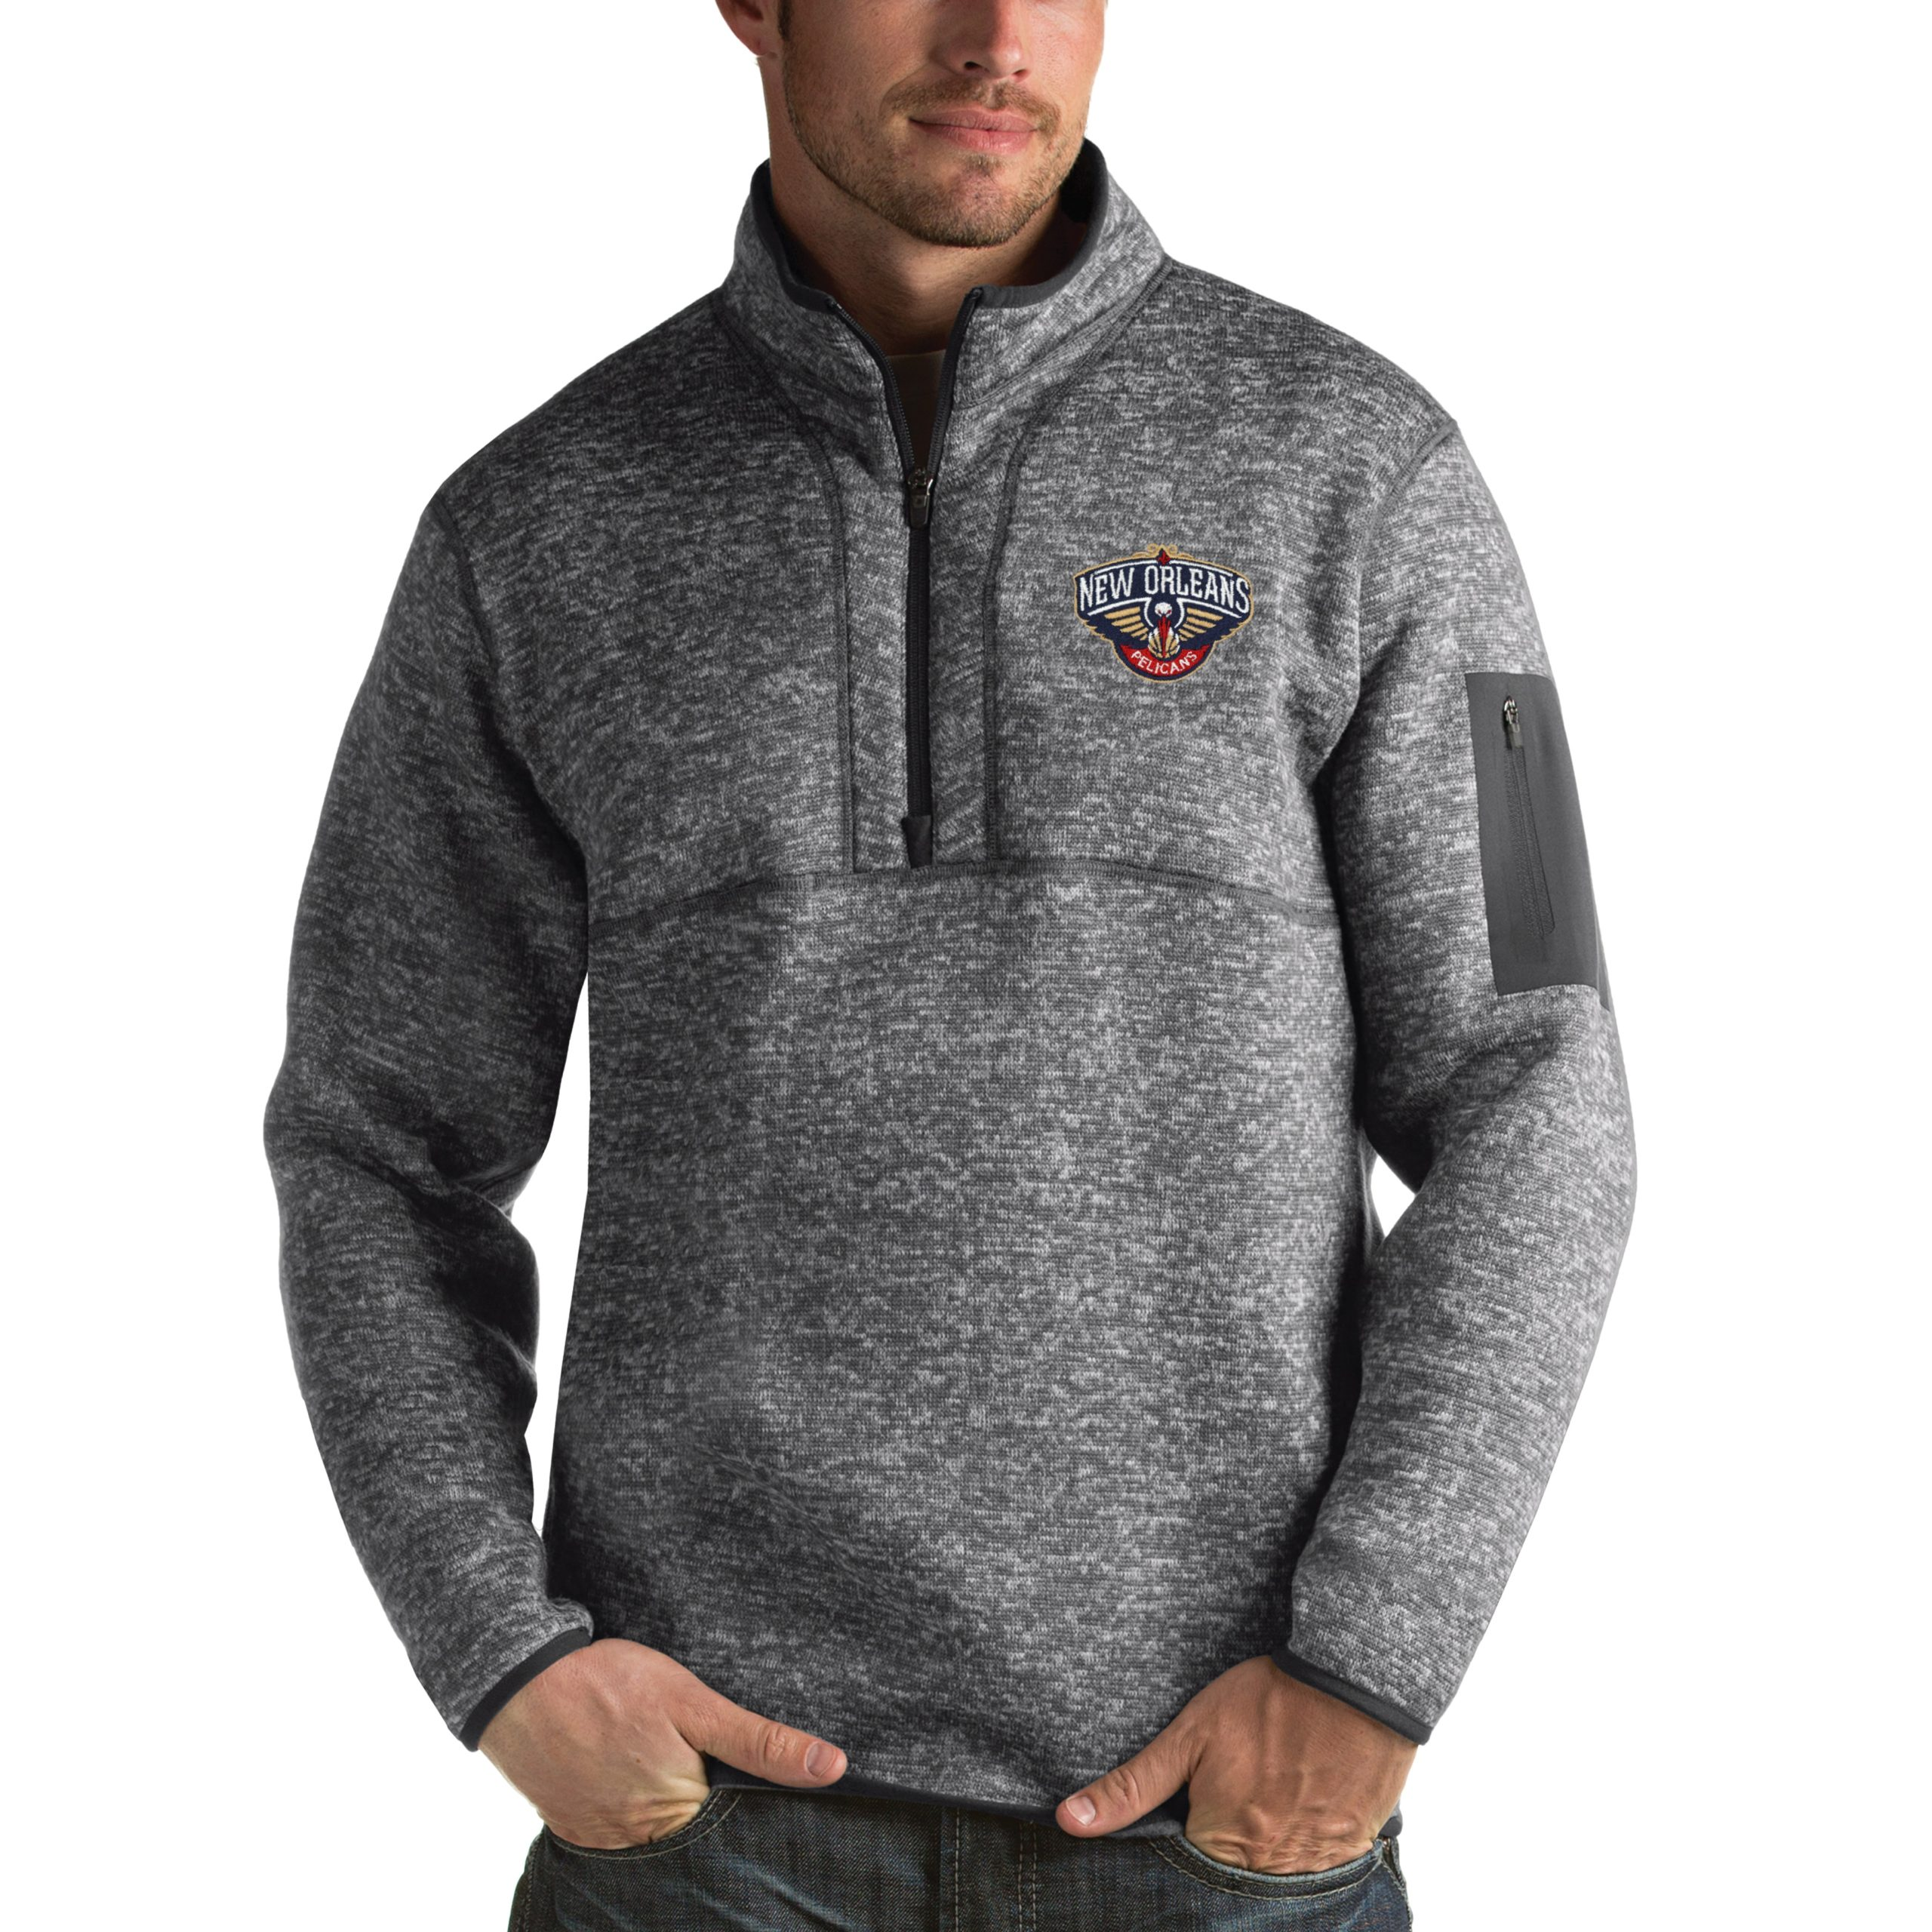 New Orleans Pelicans Antigua Fortune 1/2-Zip Pullover Jacket - Heathered Black